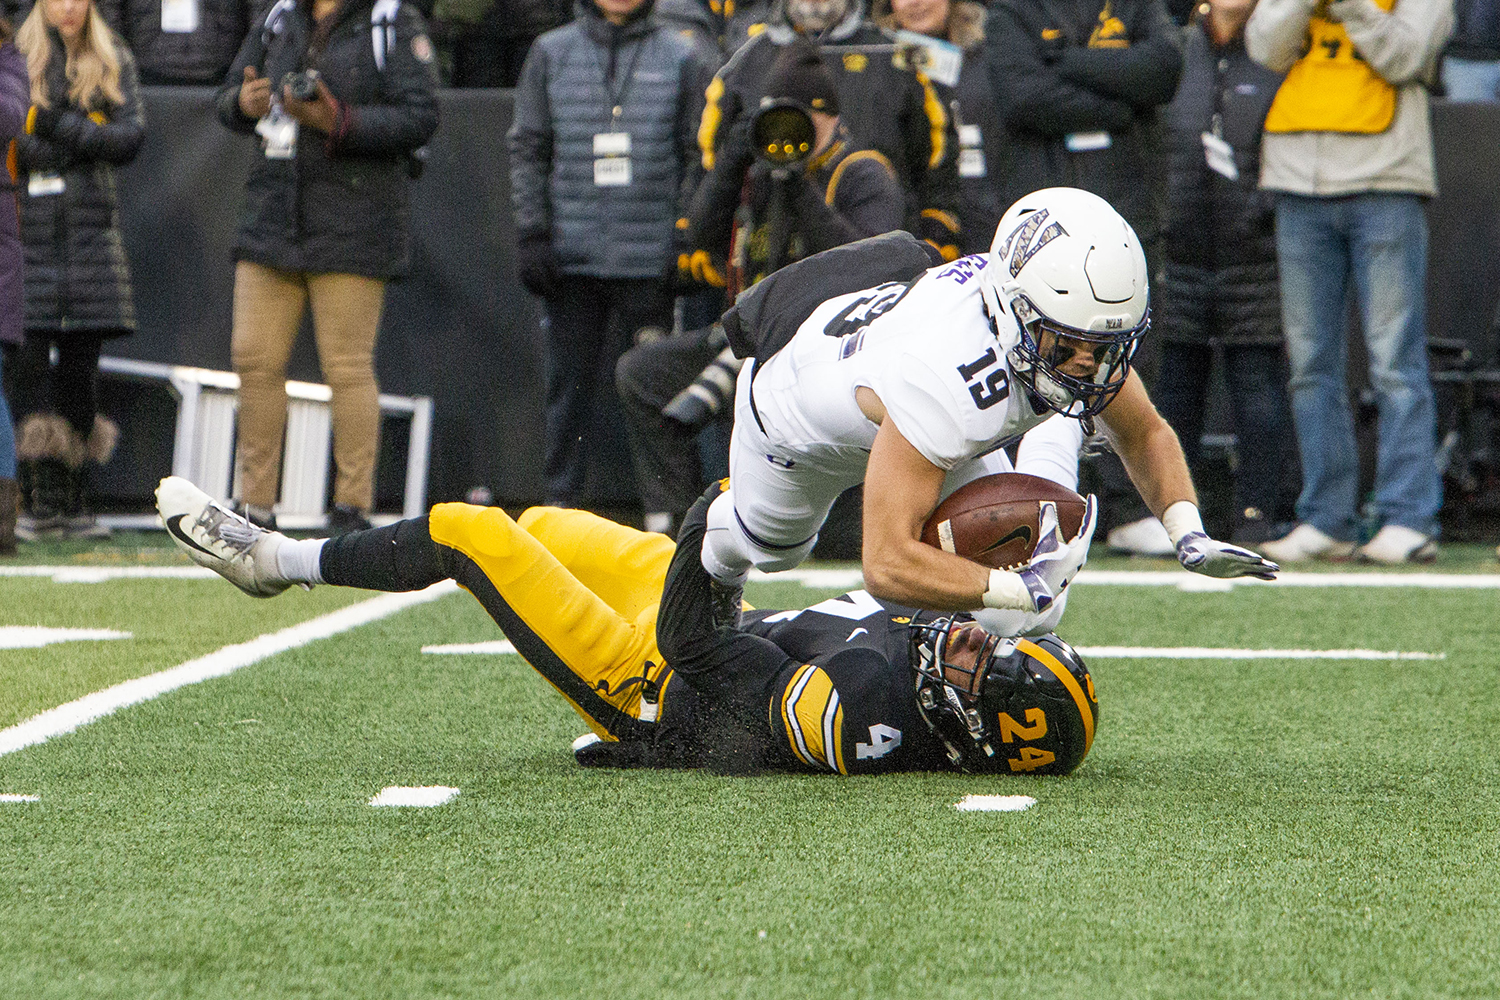 Northwestern wide receiver Riley Lees jumps over Iowa defensive back Josh Turner during the Iowa/Northwestern game at Kinnick Stadium on Saturday, November 10, 2018. The Wildcats defeated the Hawkeyes 14-10. (Katina Zentz/The Daily Iowan)